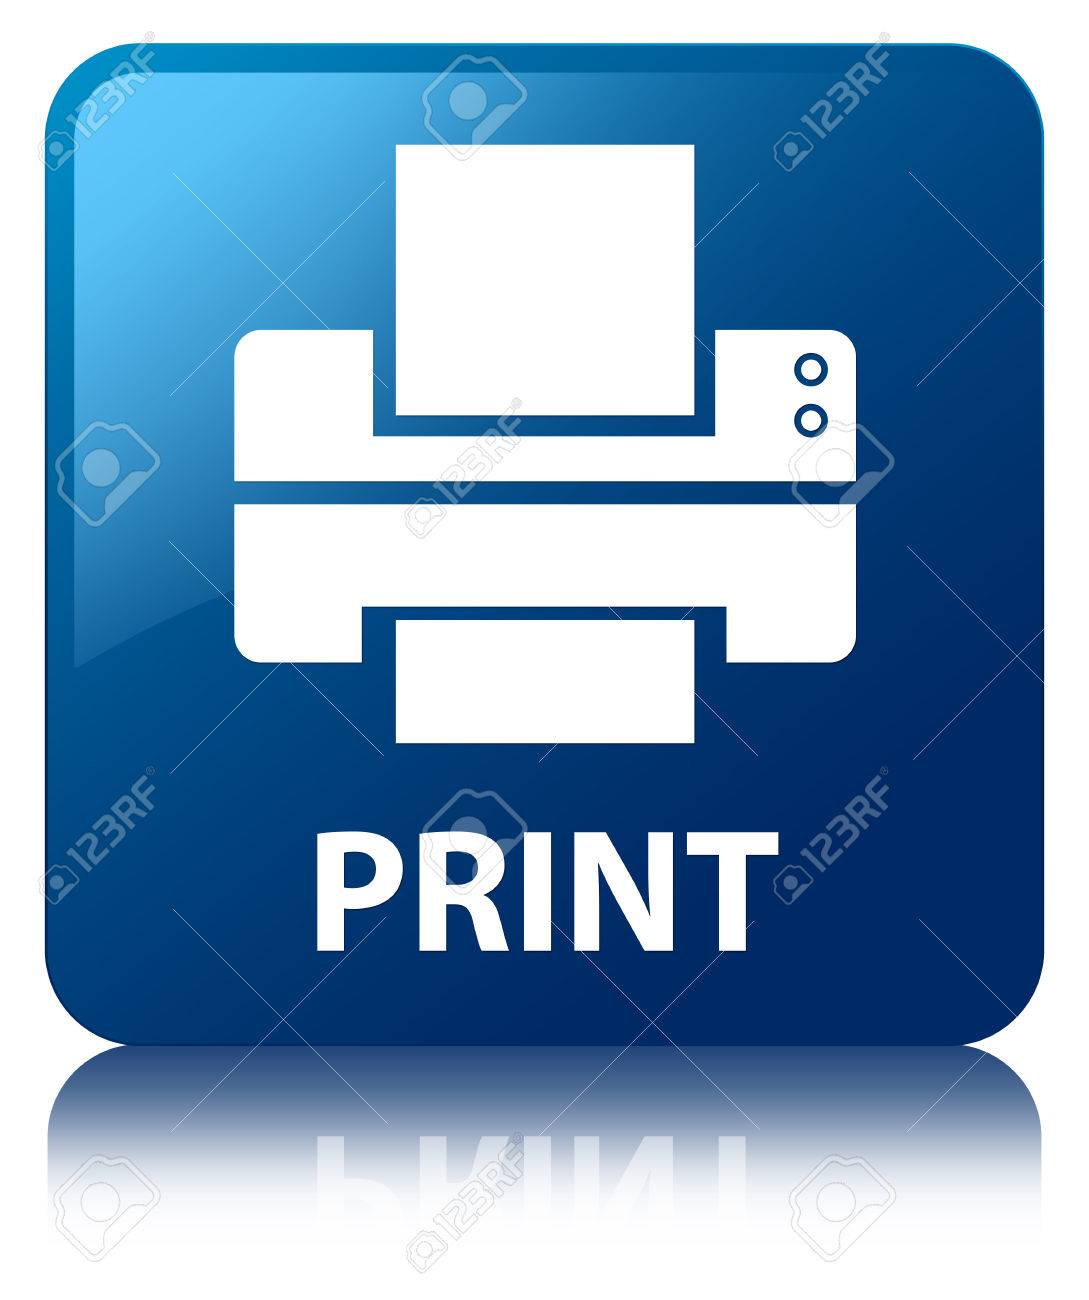 Print Glossy Blue Reflected Square Button Stock Photo, Picture And ...